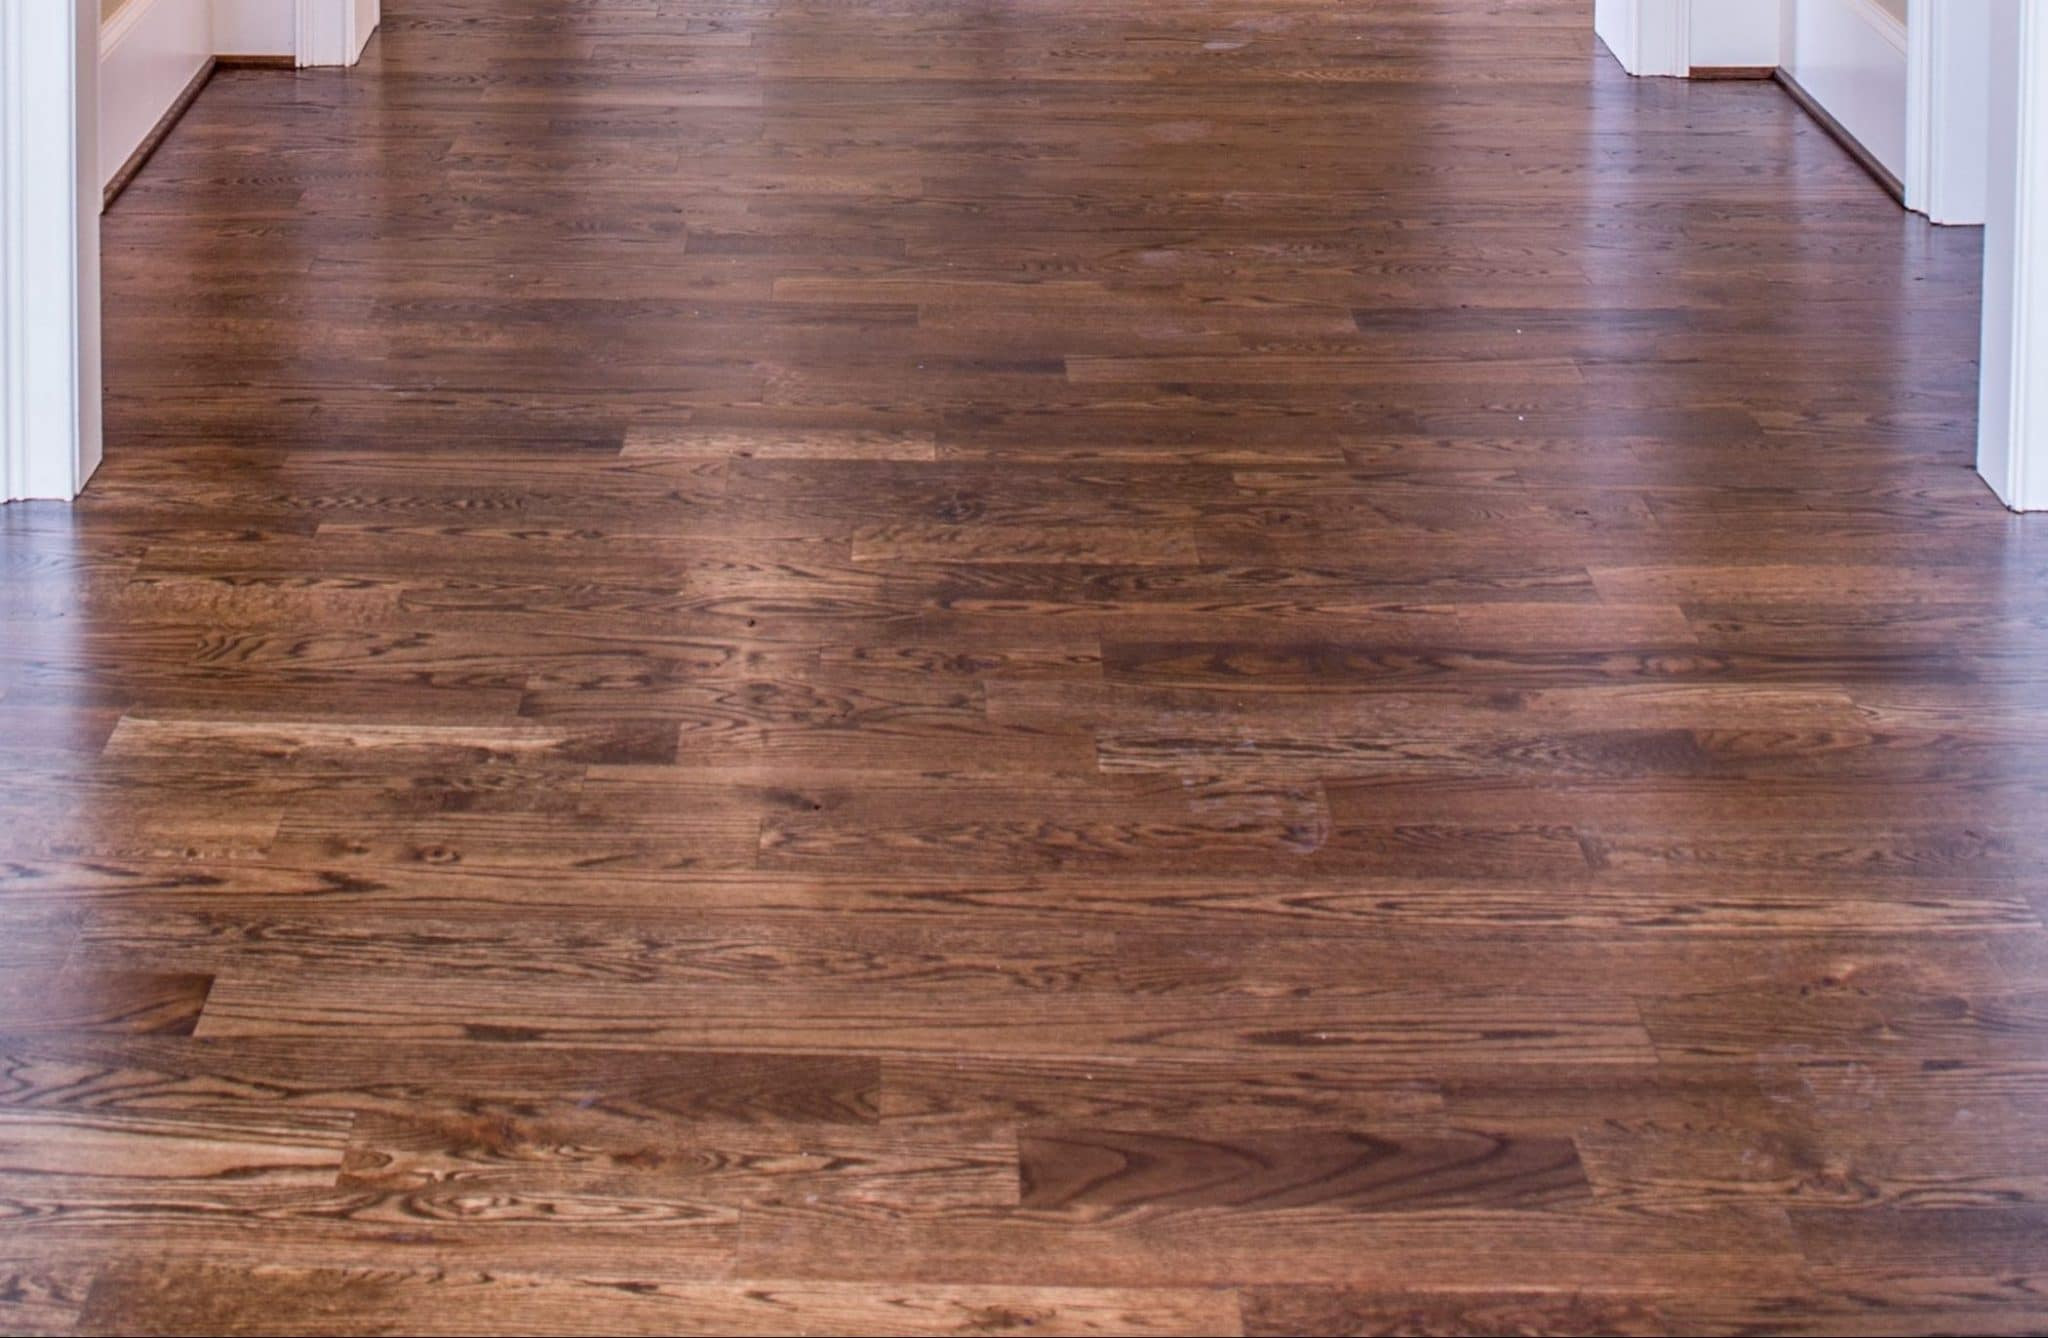 hardwood floor cleaning services chicago of how to remove nail polish from hardwood floors floor intended for how to remove nail polish from hardwood floors hardwood floor cleaning hardwood flooring prices oak flooring